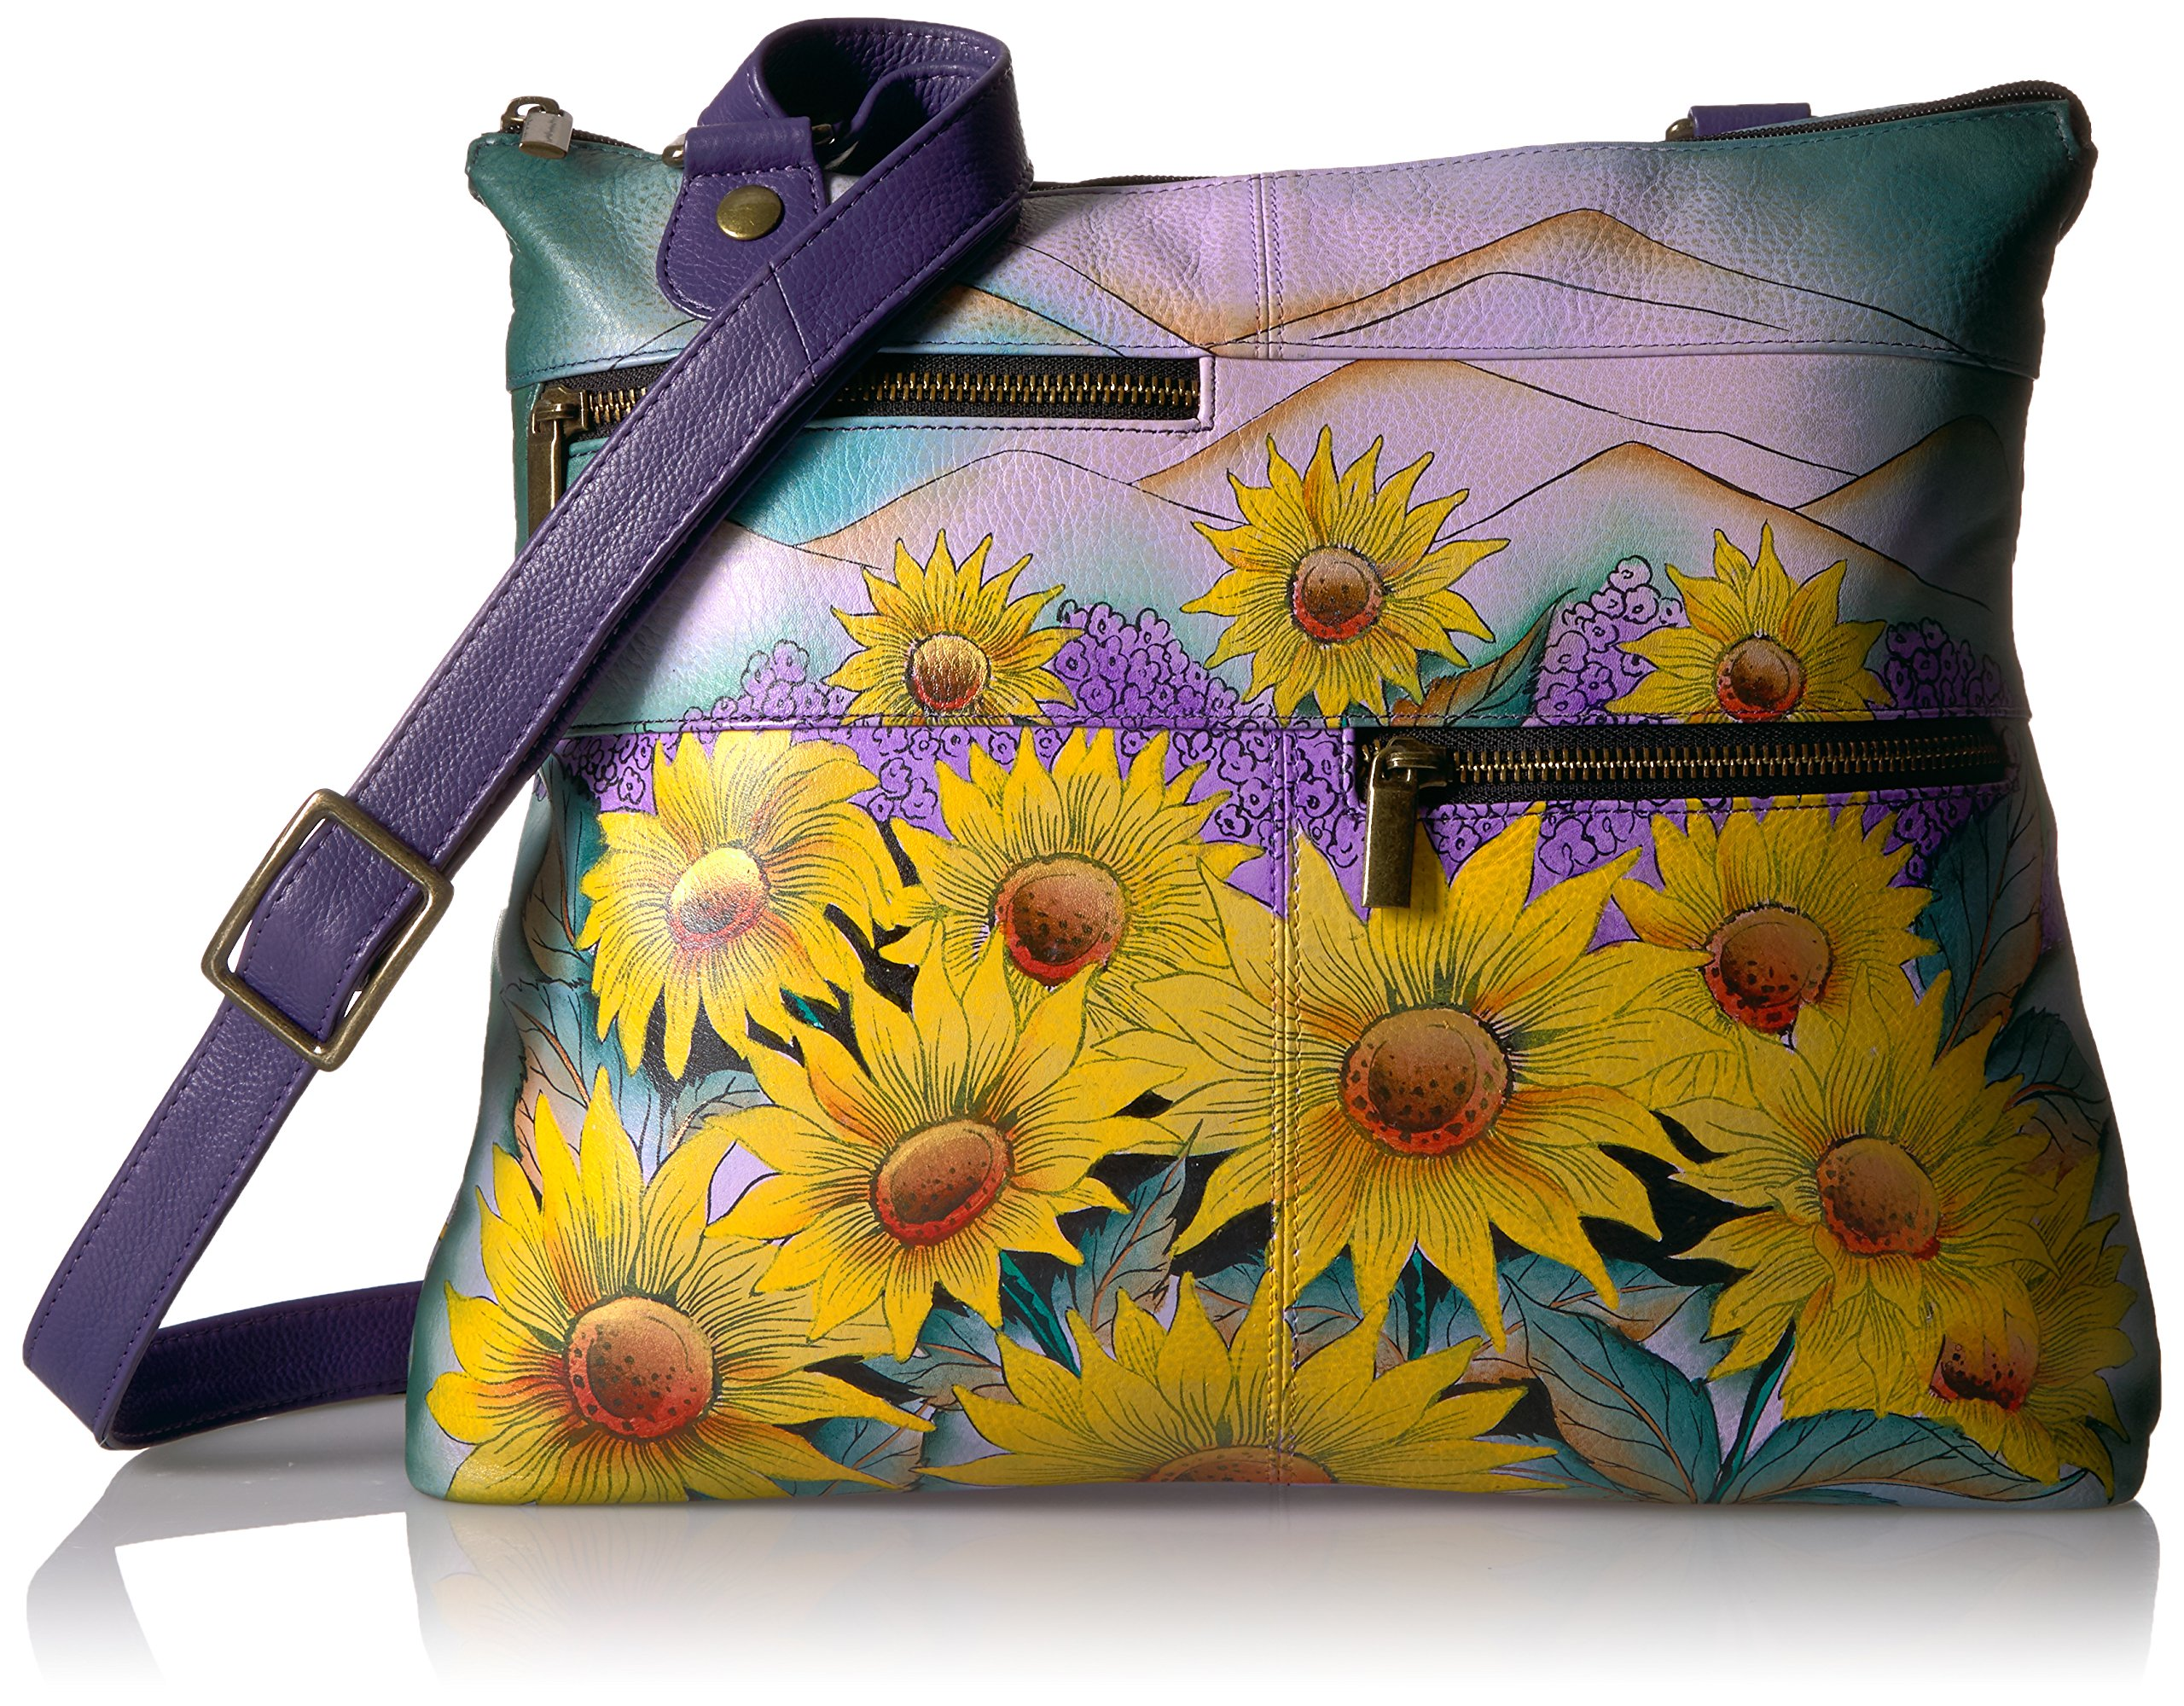 Anuschka Hand Painted Leather Large Crossbody